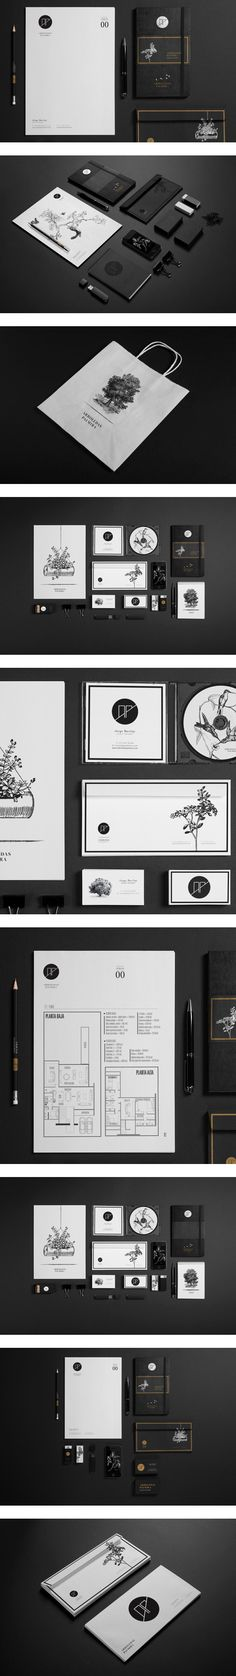 AP by Diego Leyva, via Behance | #stationary #corporate #design #corporatedesign #identity #branding #marketing < repinned by www.BlickeDeeler.de | Take a look at www.LogoGestaltung-Hamburg.de